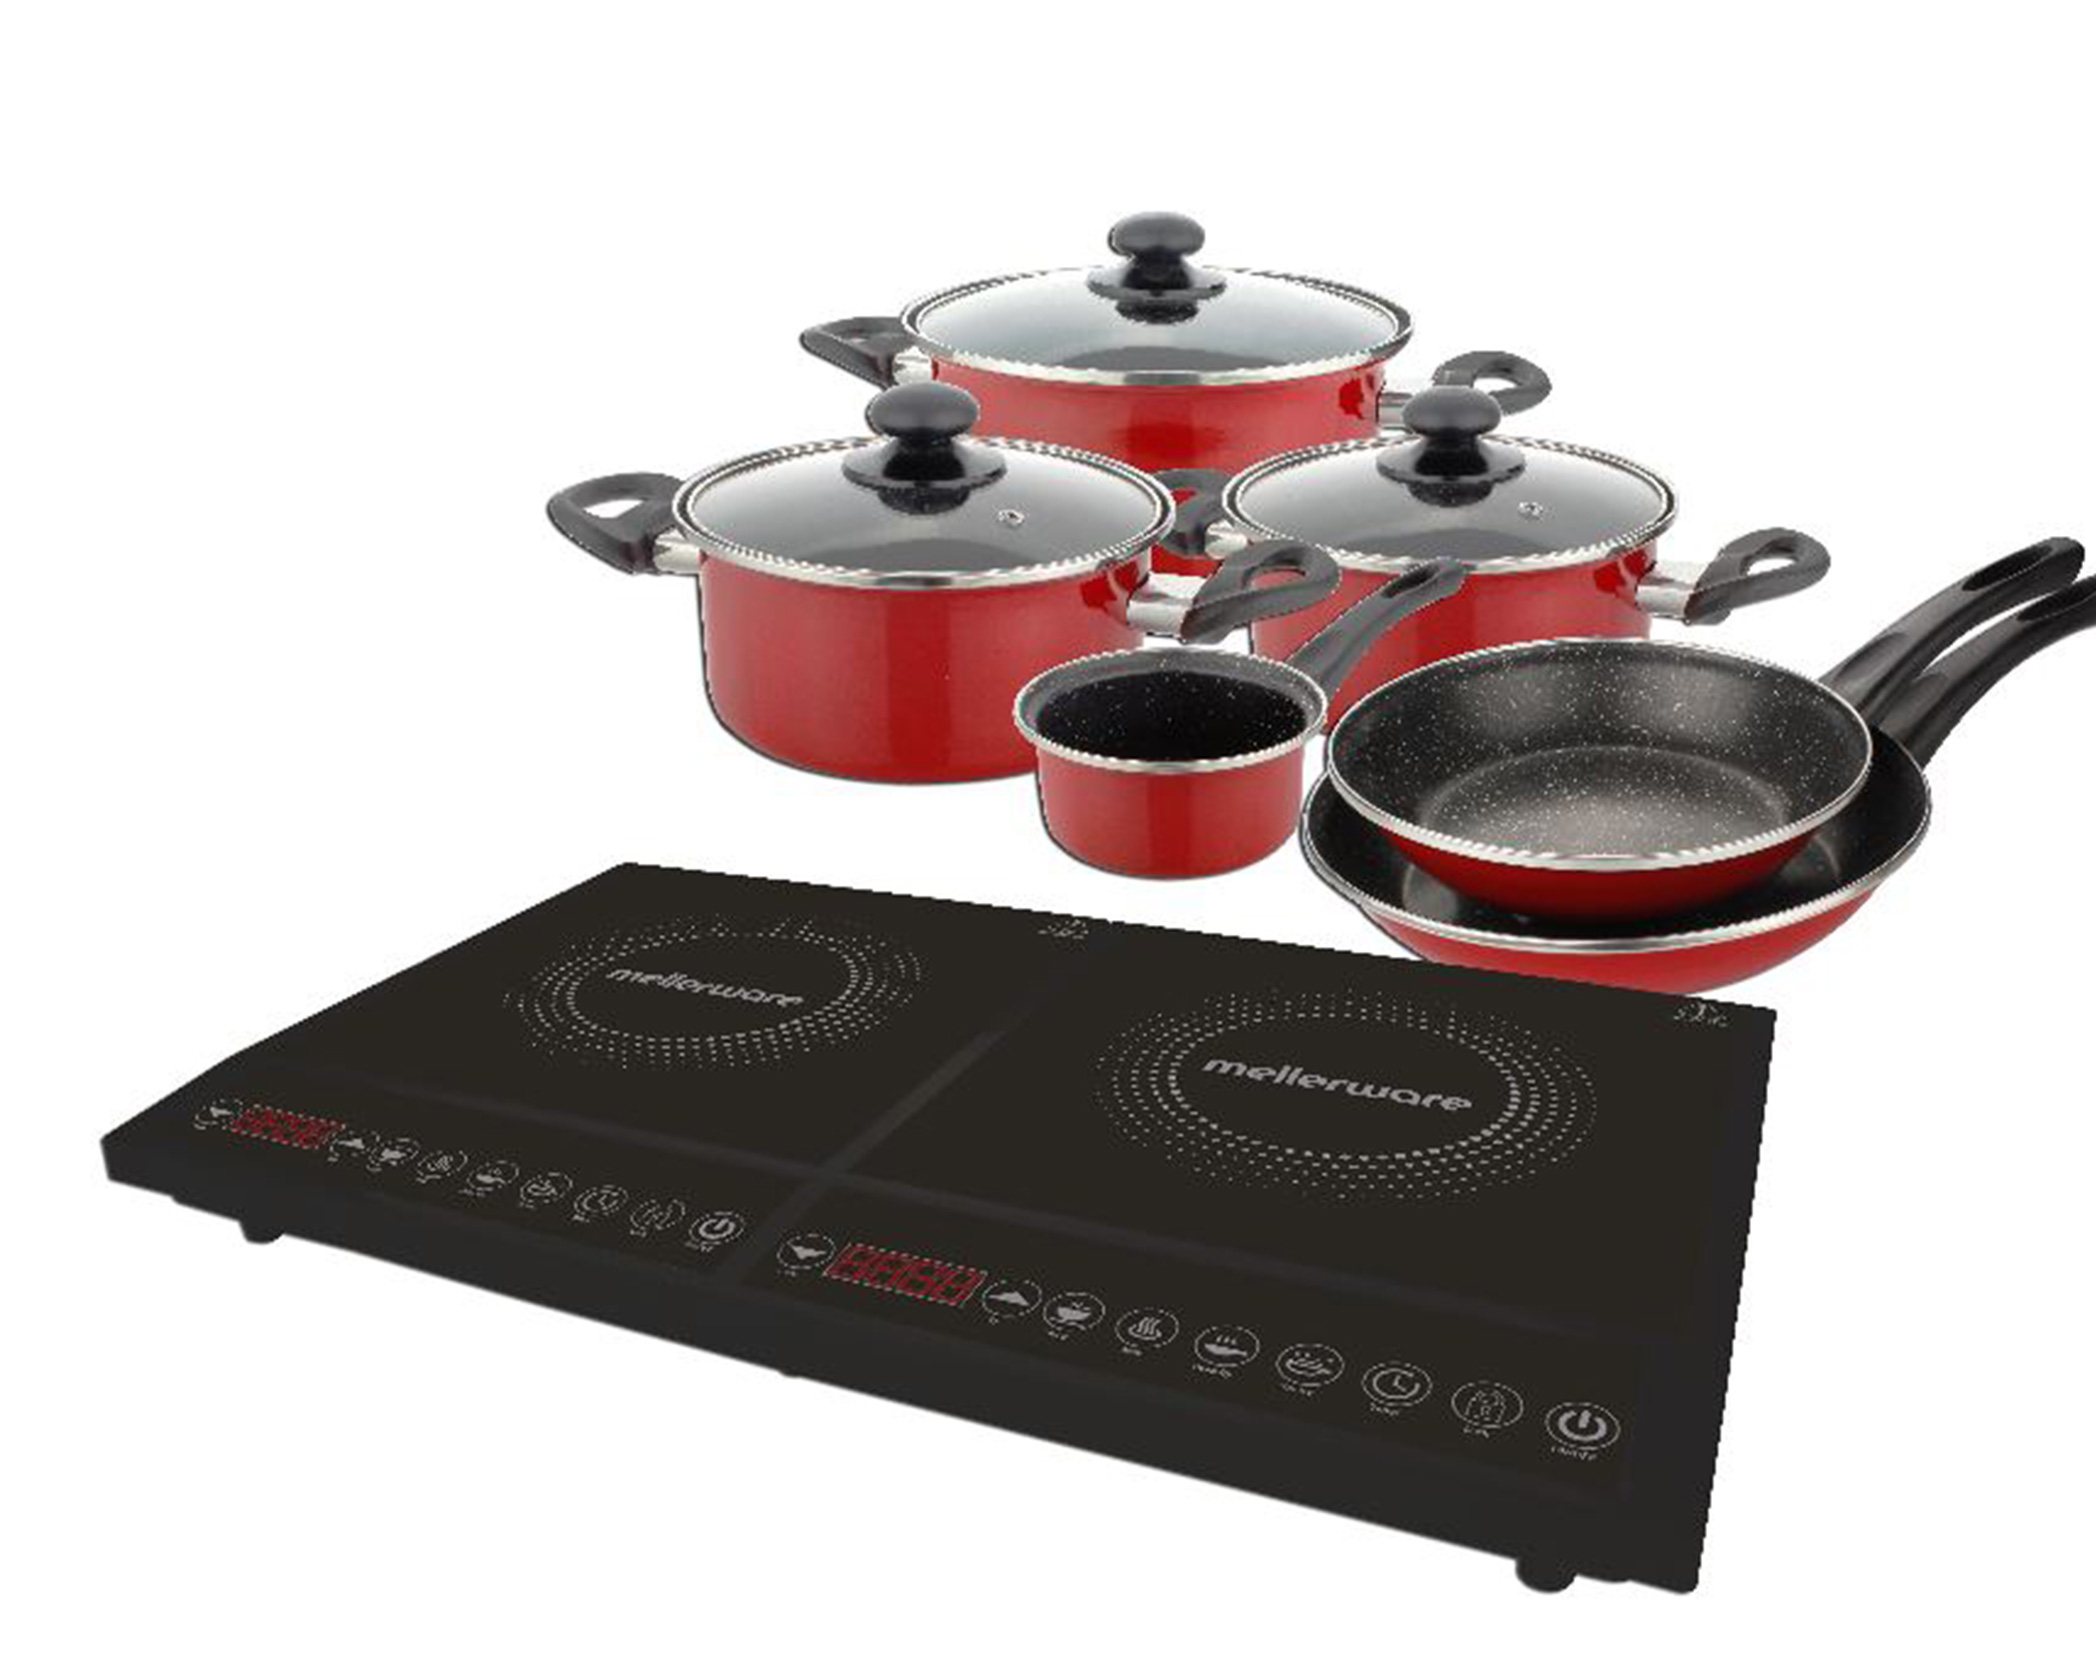 The Best Induction Cooker Reviews Cooktop Island Cooktop